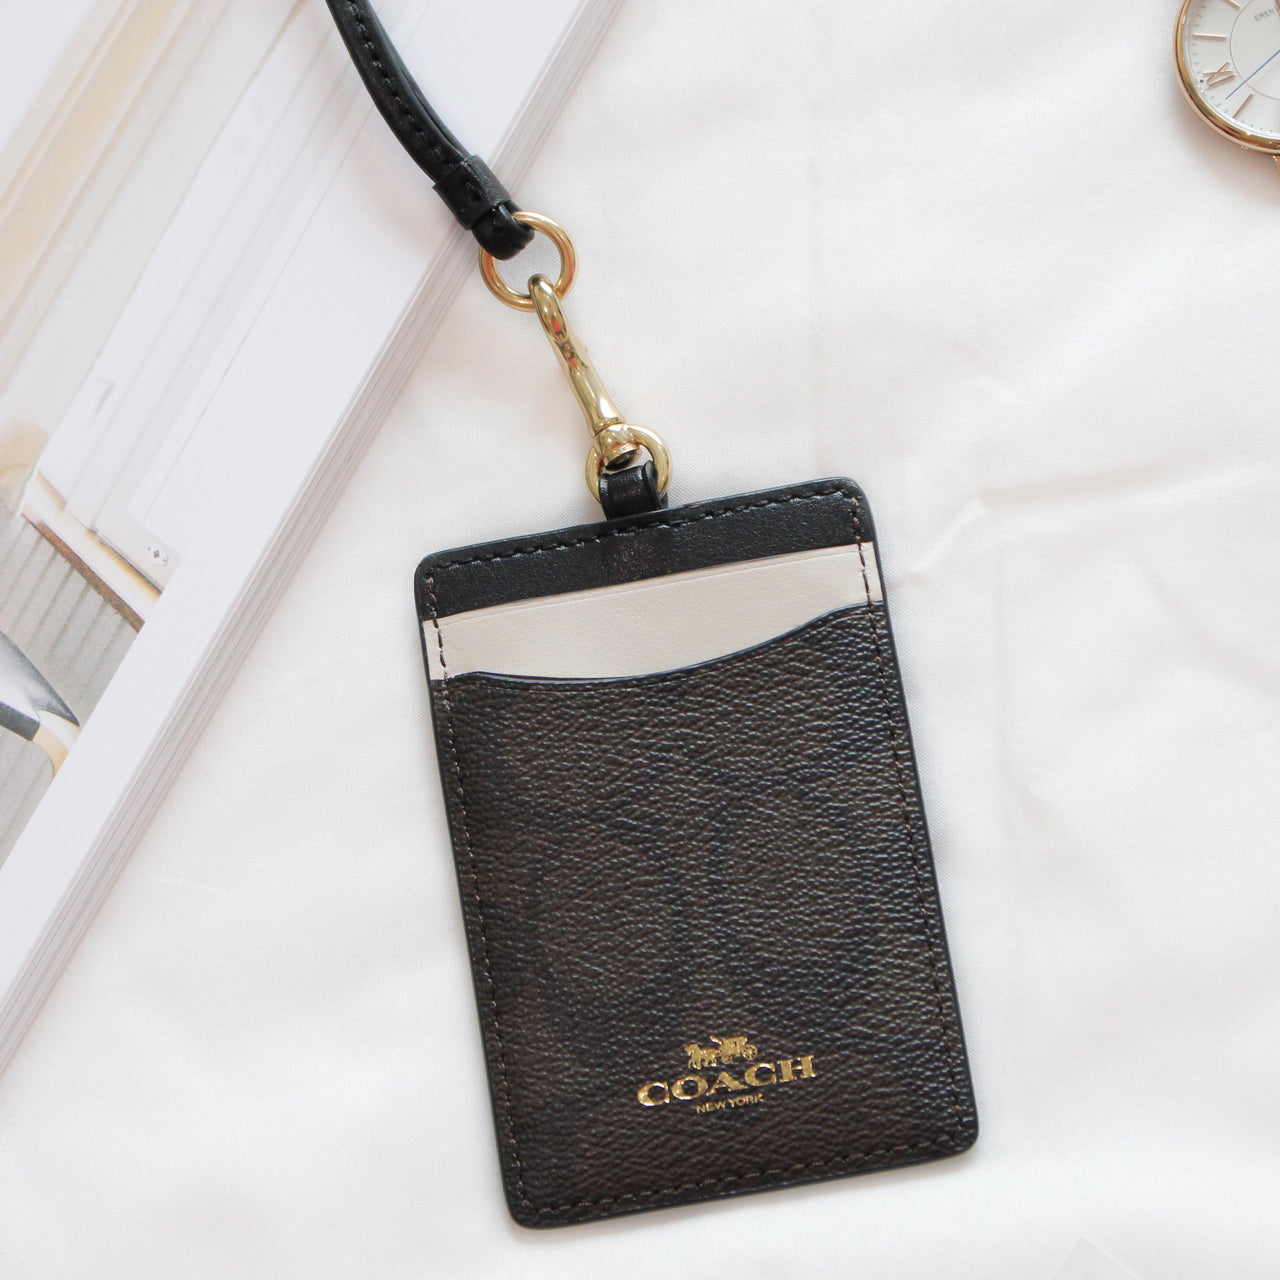 COACH LANYARD ID CASE IN COLORBLOCK SIGNATURE - LovelyMadness Clothing Online Fashion Malaysia